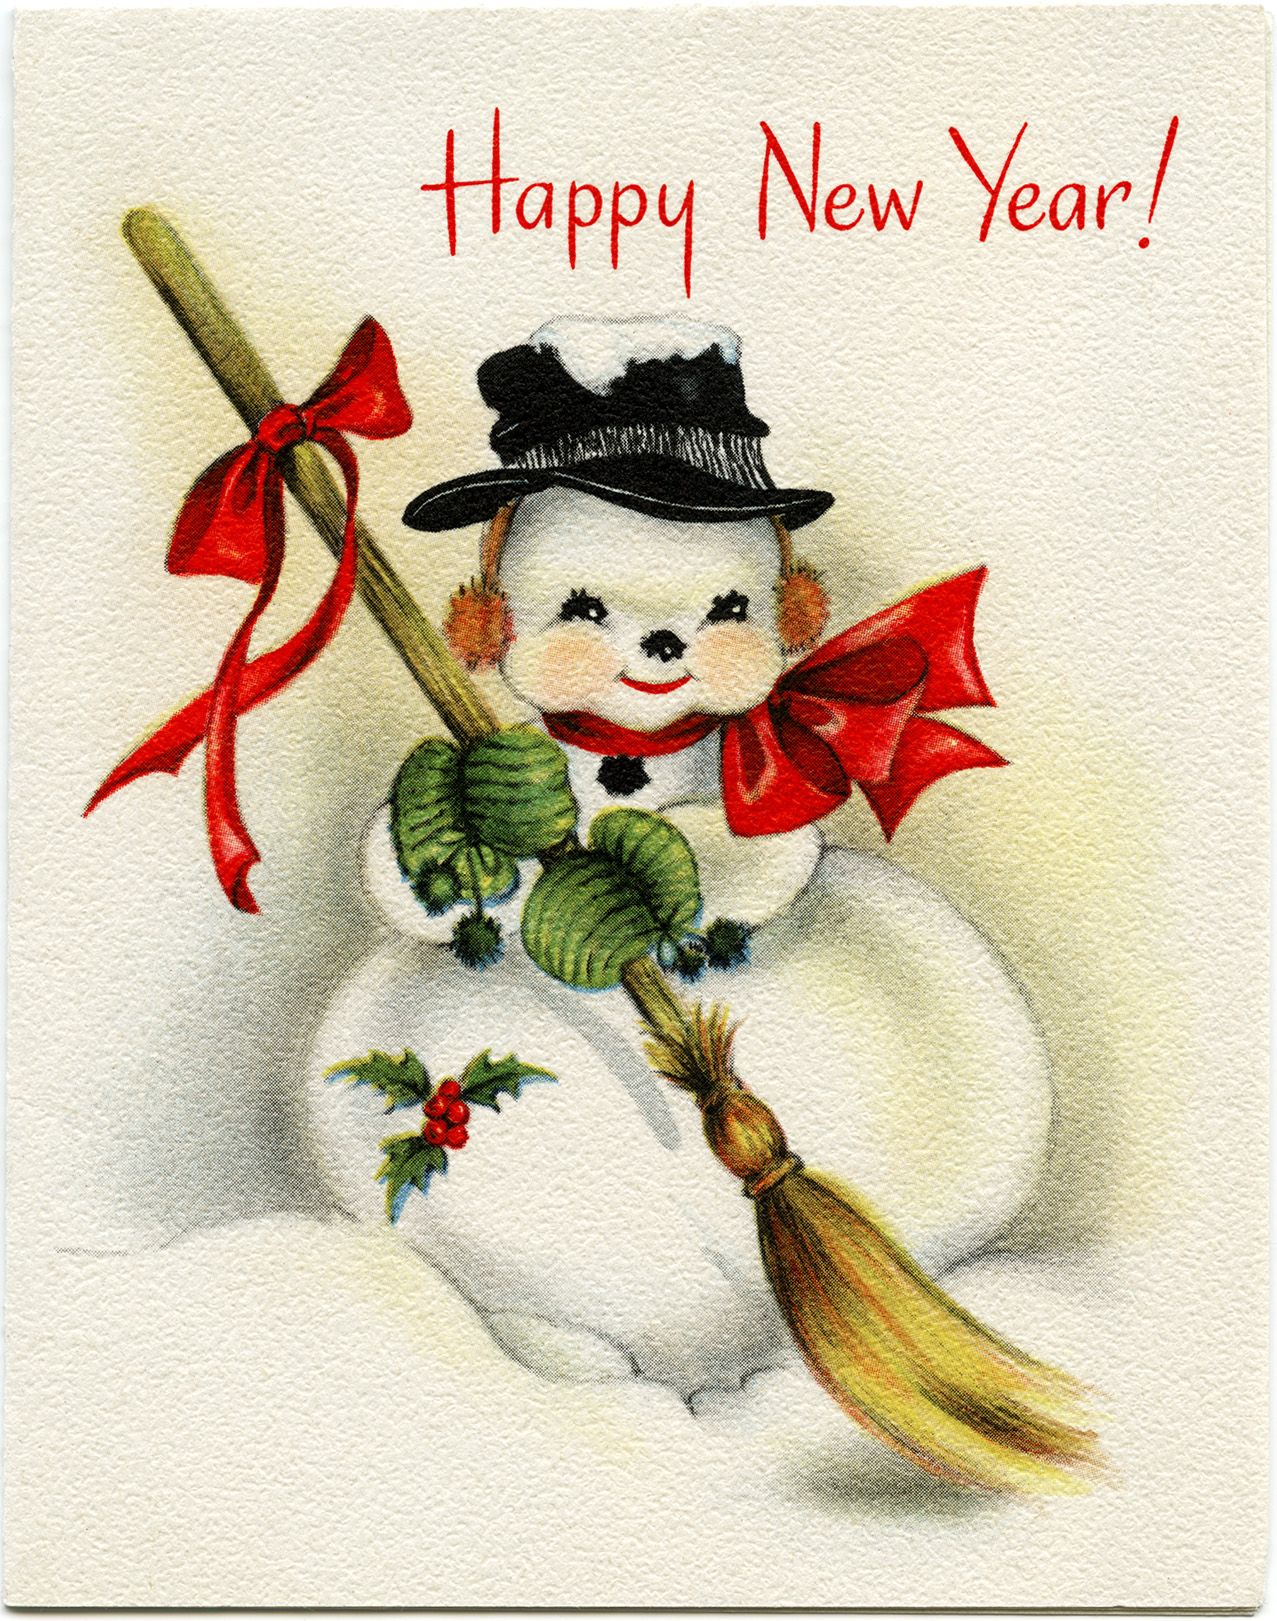 1000+ images about ~*Greeting Cards ~ New Years*~ on Pinterest.